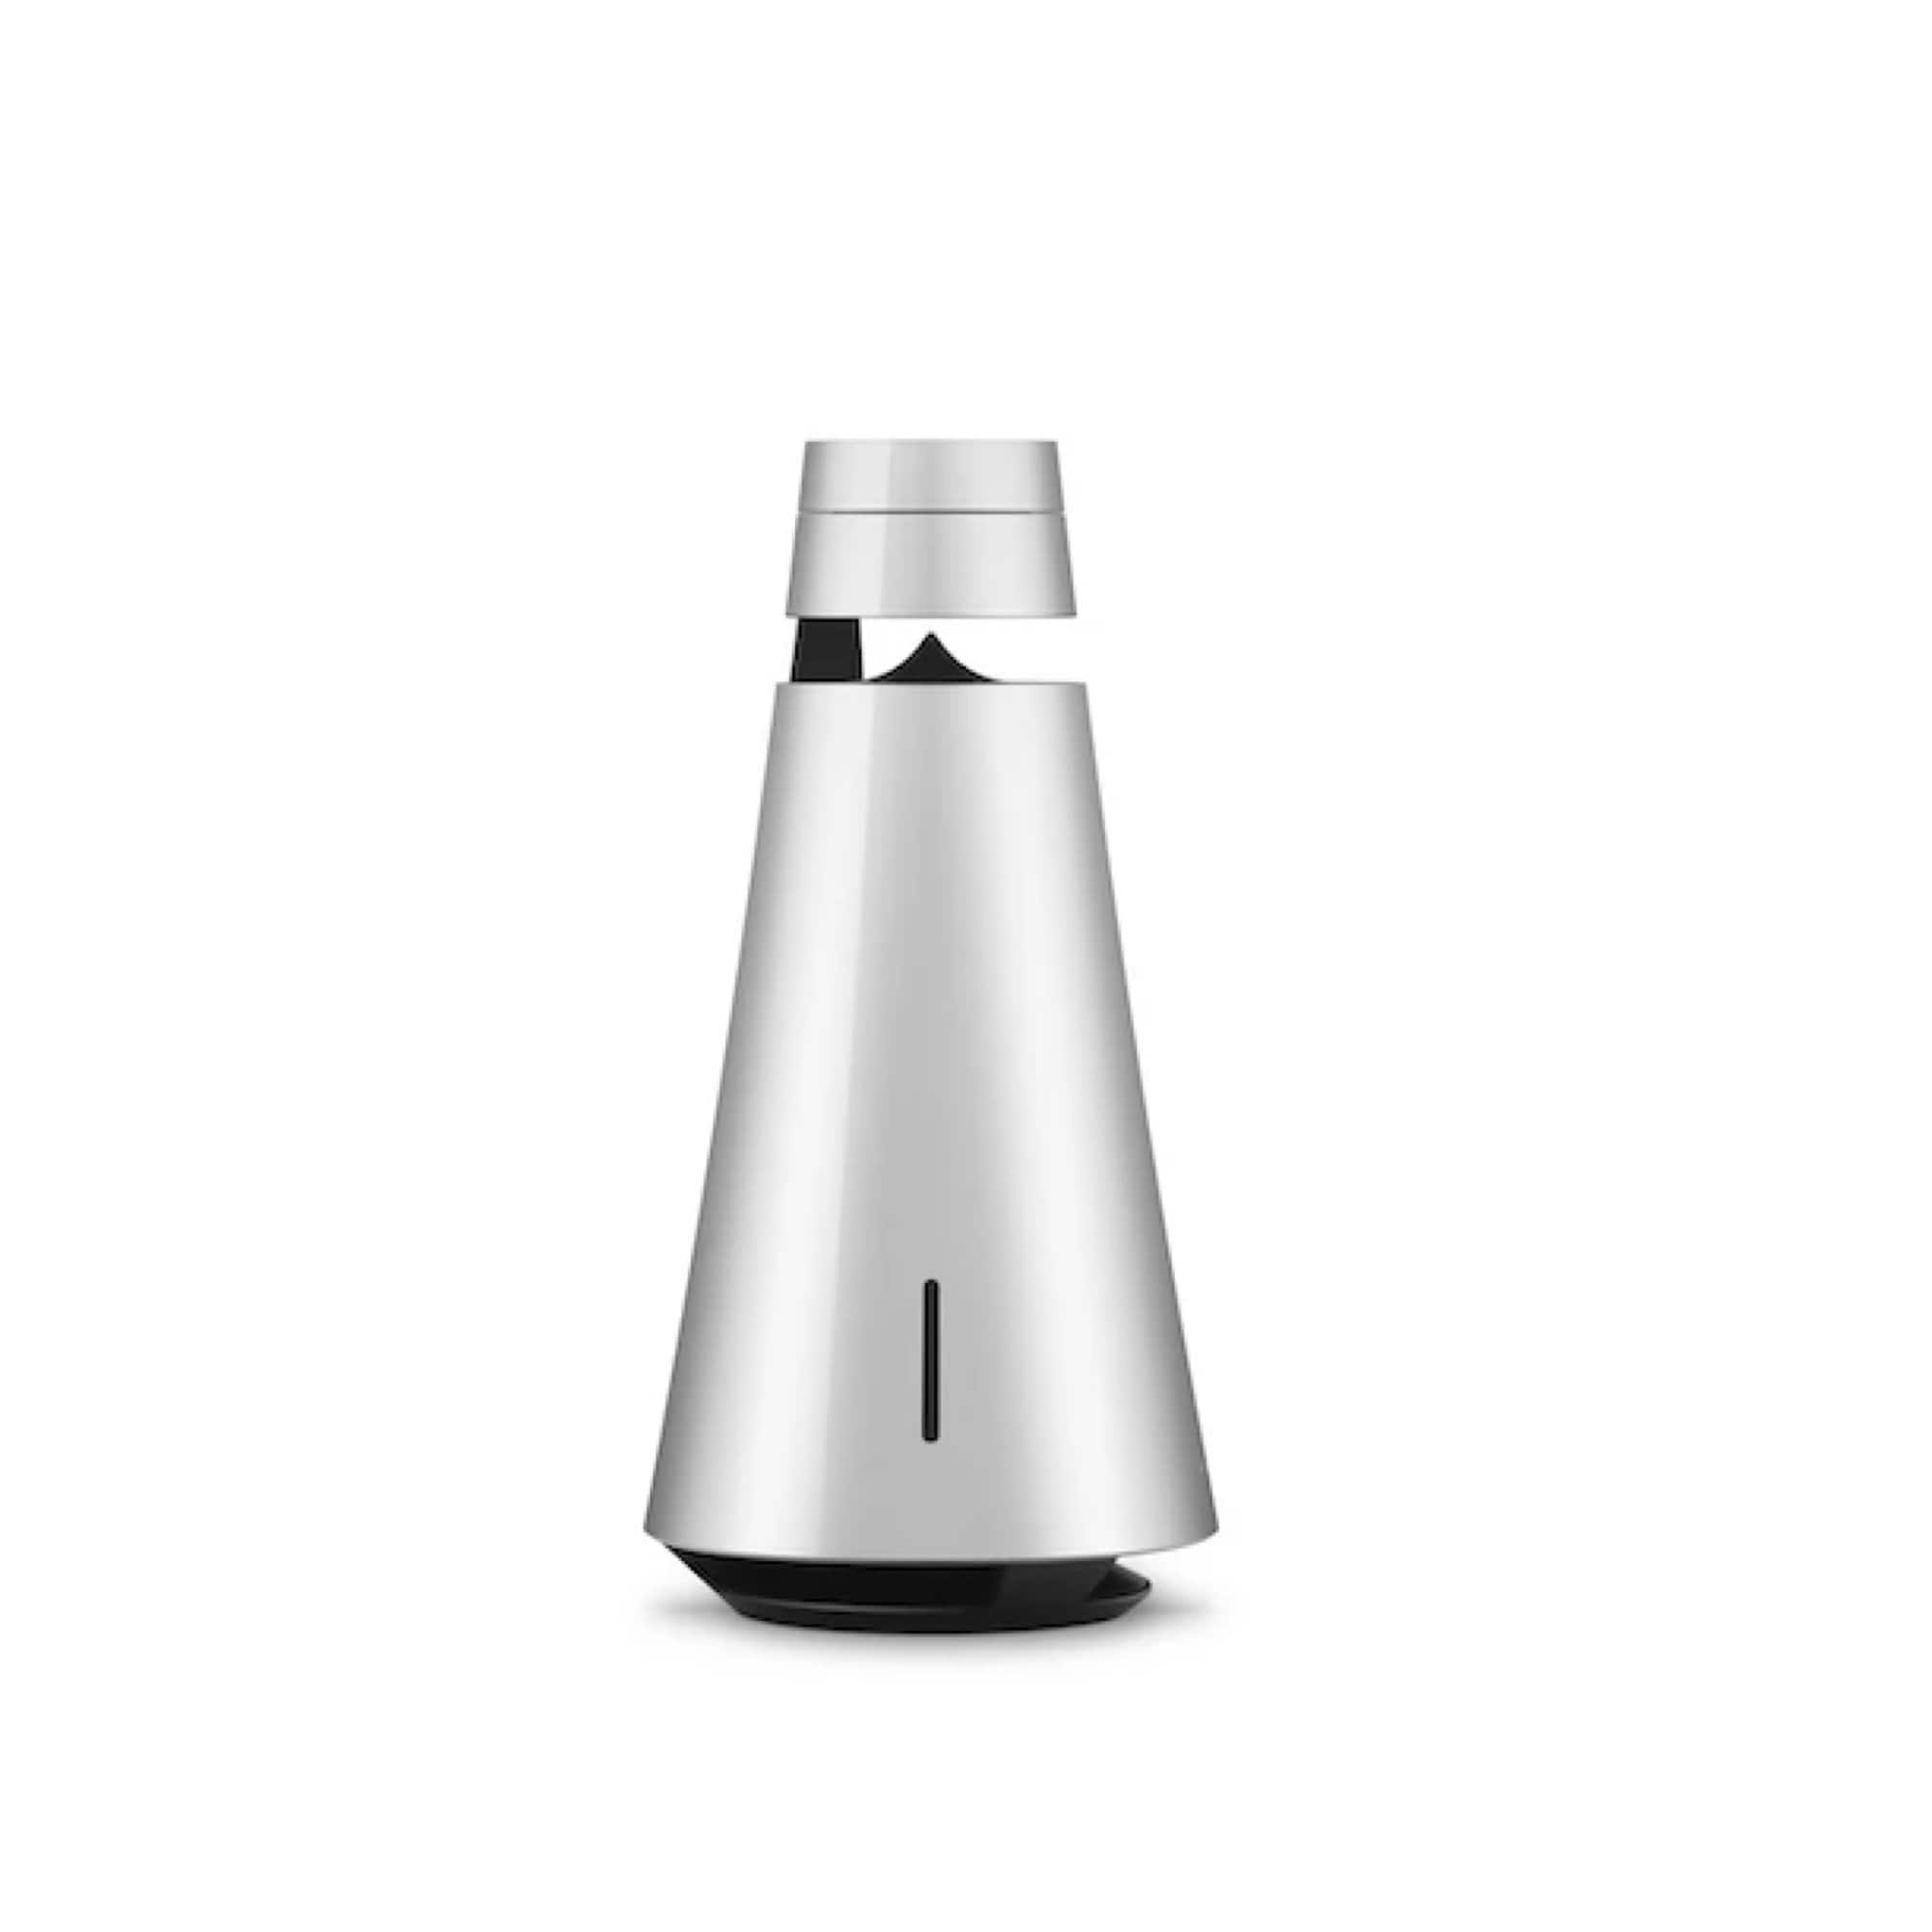 Natural Aluminum Beosound 1 Wireless Multiroom Speaker with Battery and Voice Assist